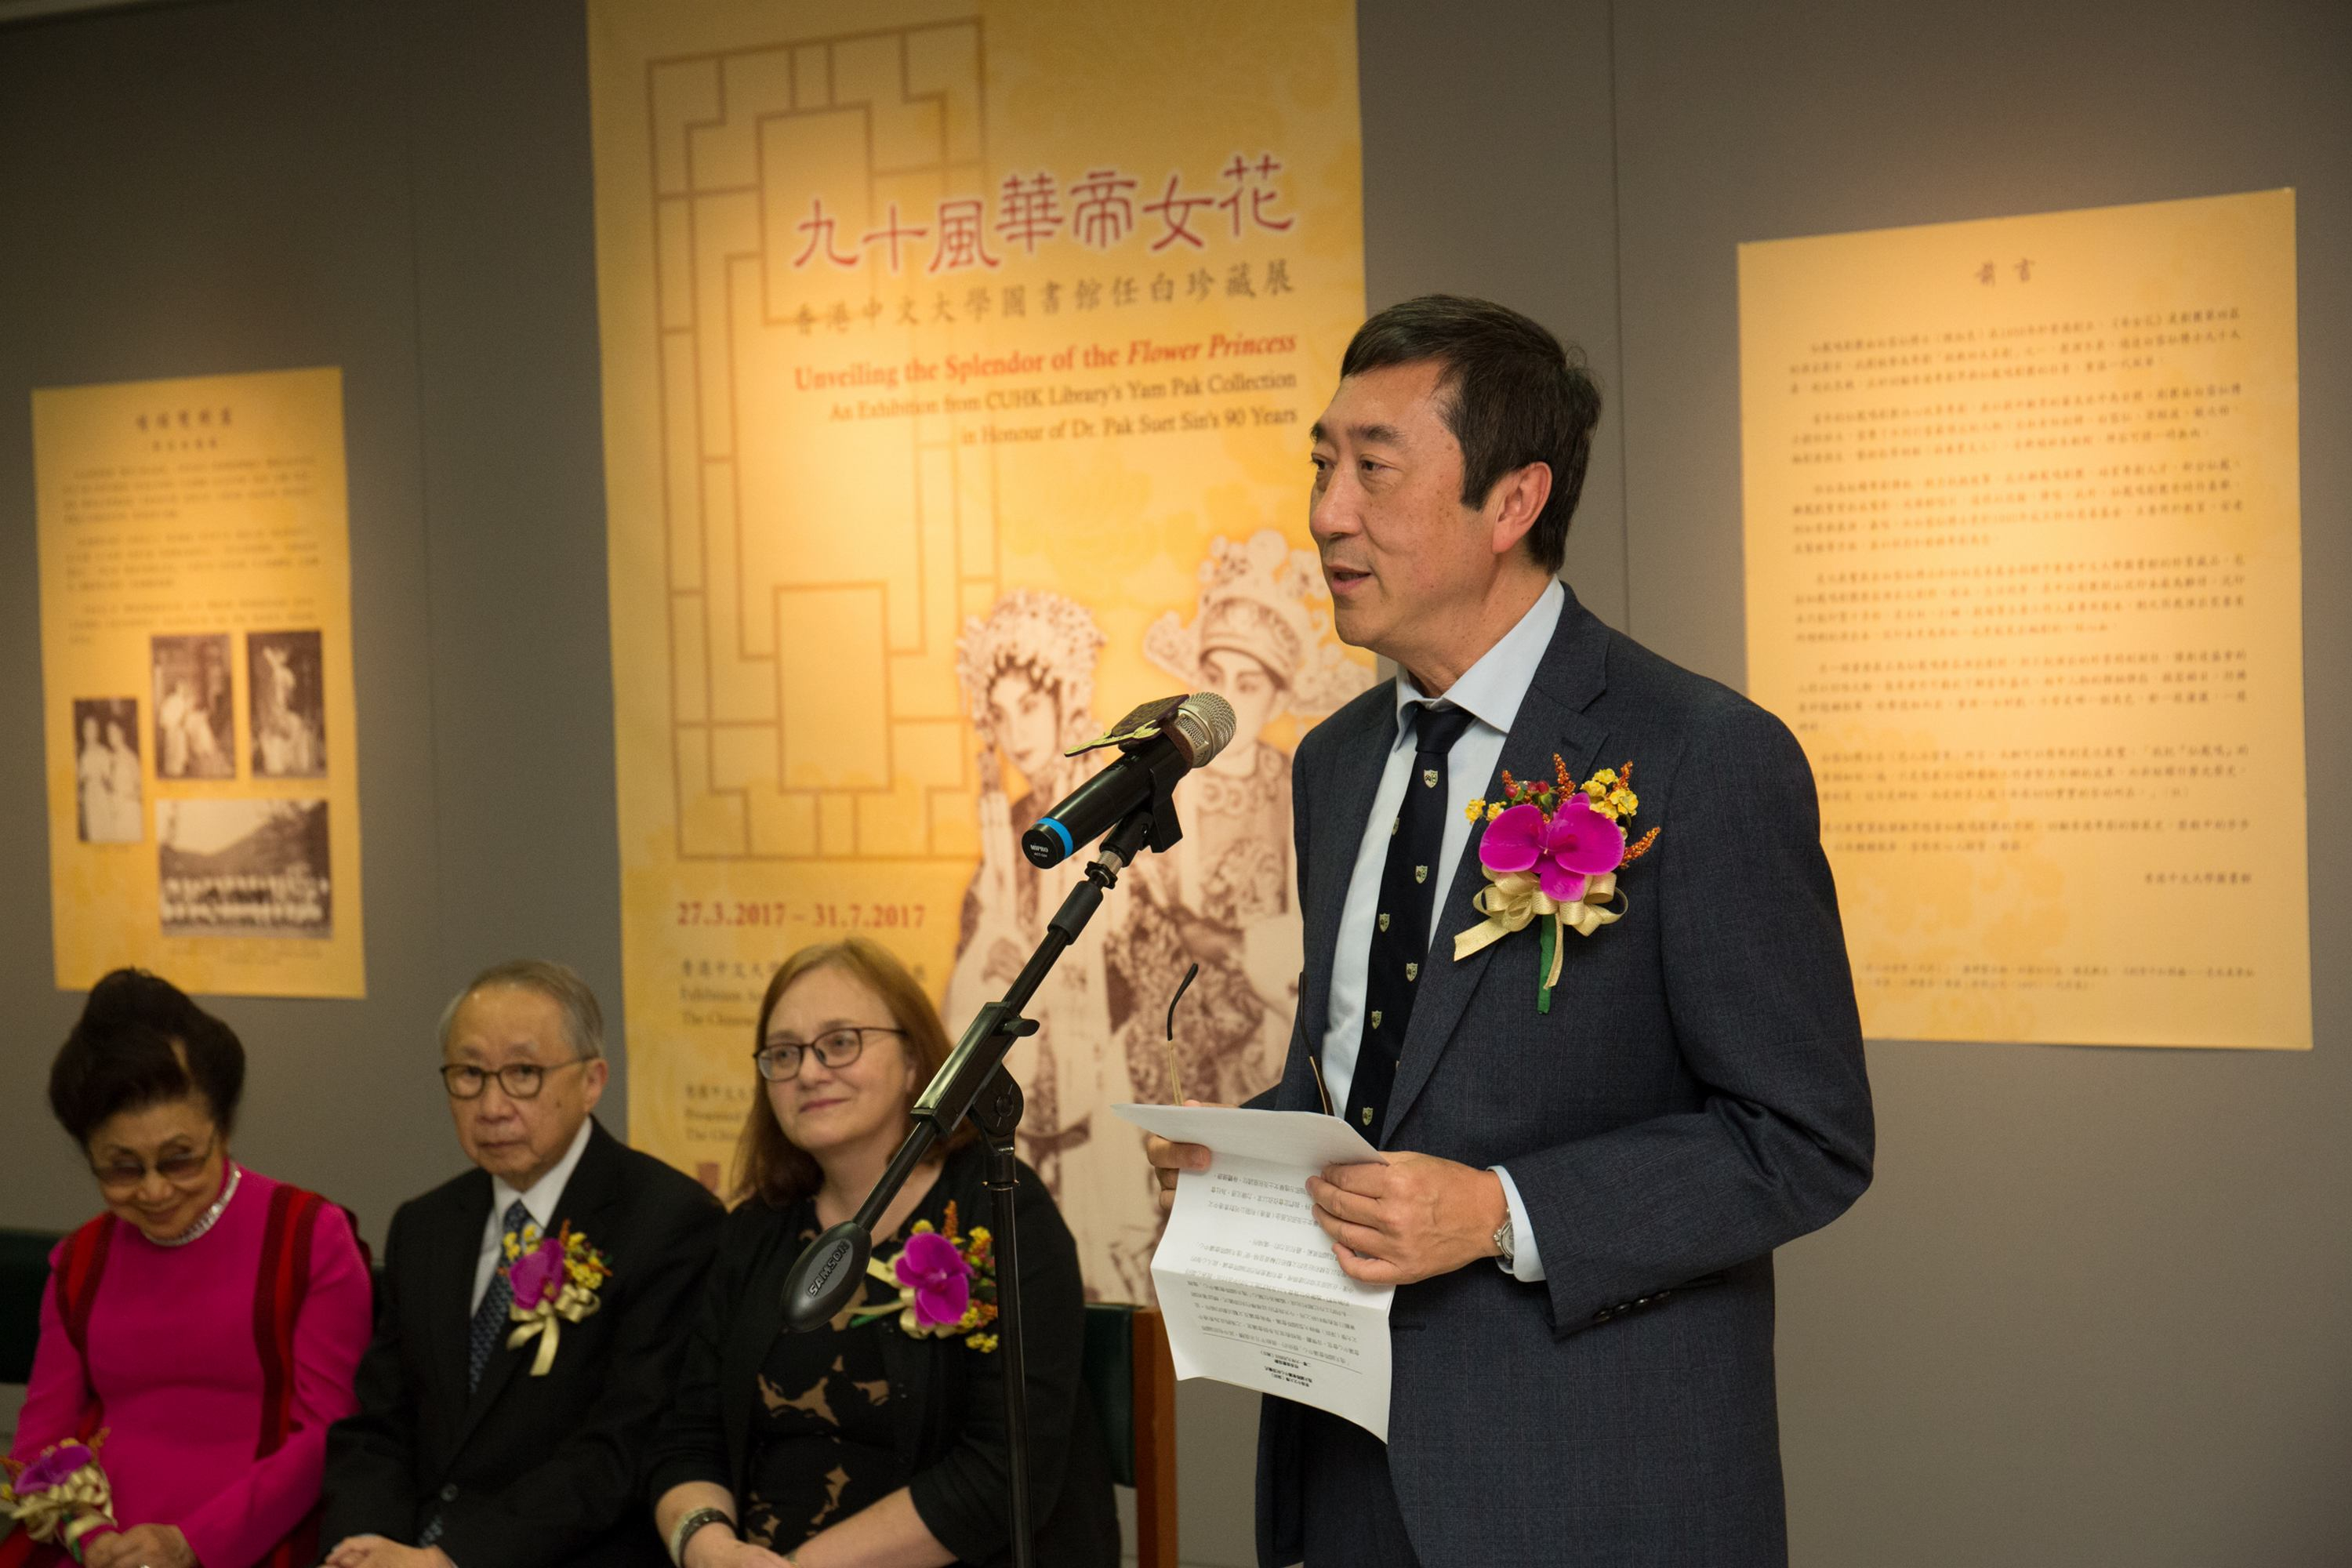 Prof. Joseph J.Y. Sung, Vice-Chancellor and President of CUHK delivers a speech.